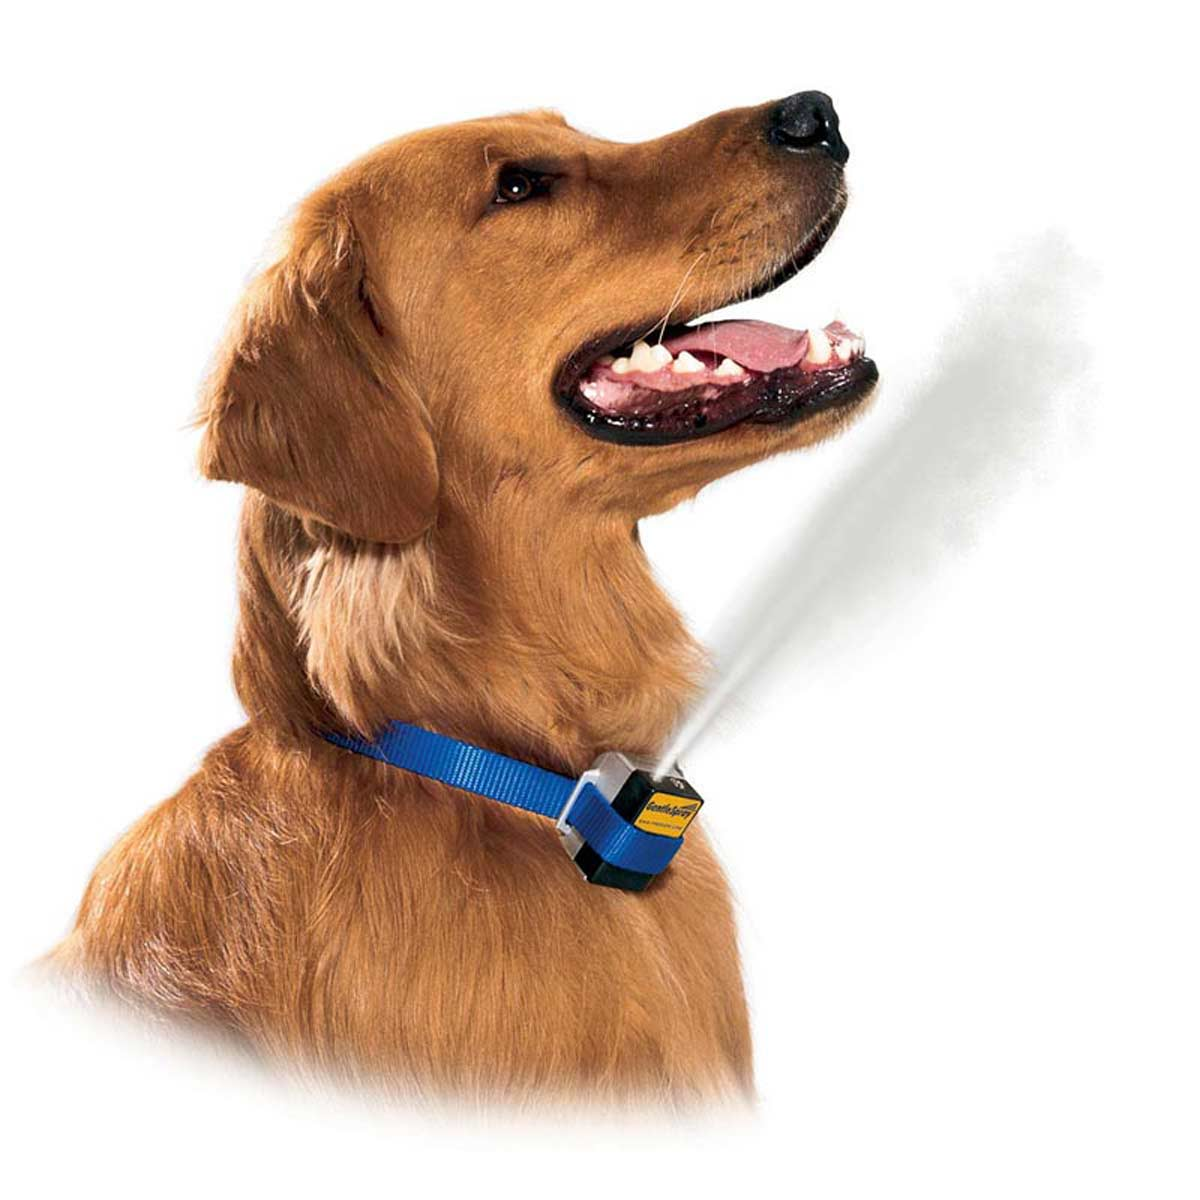 GentleSpray Bark Collar - Sprays Citronella for Pet Correcting